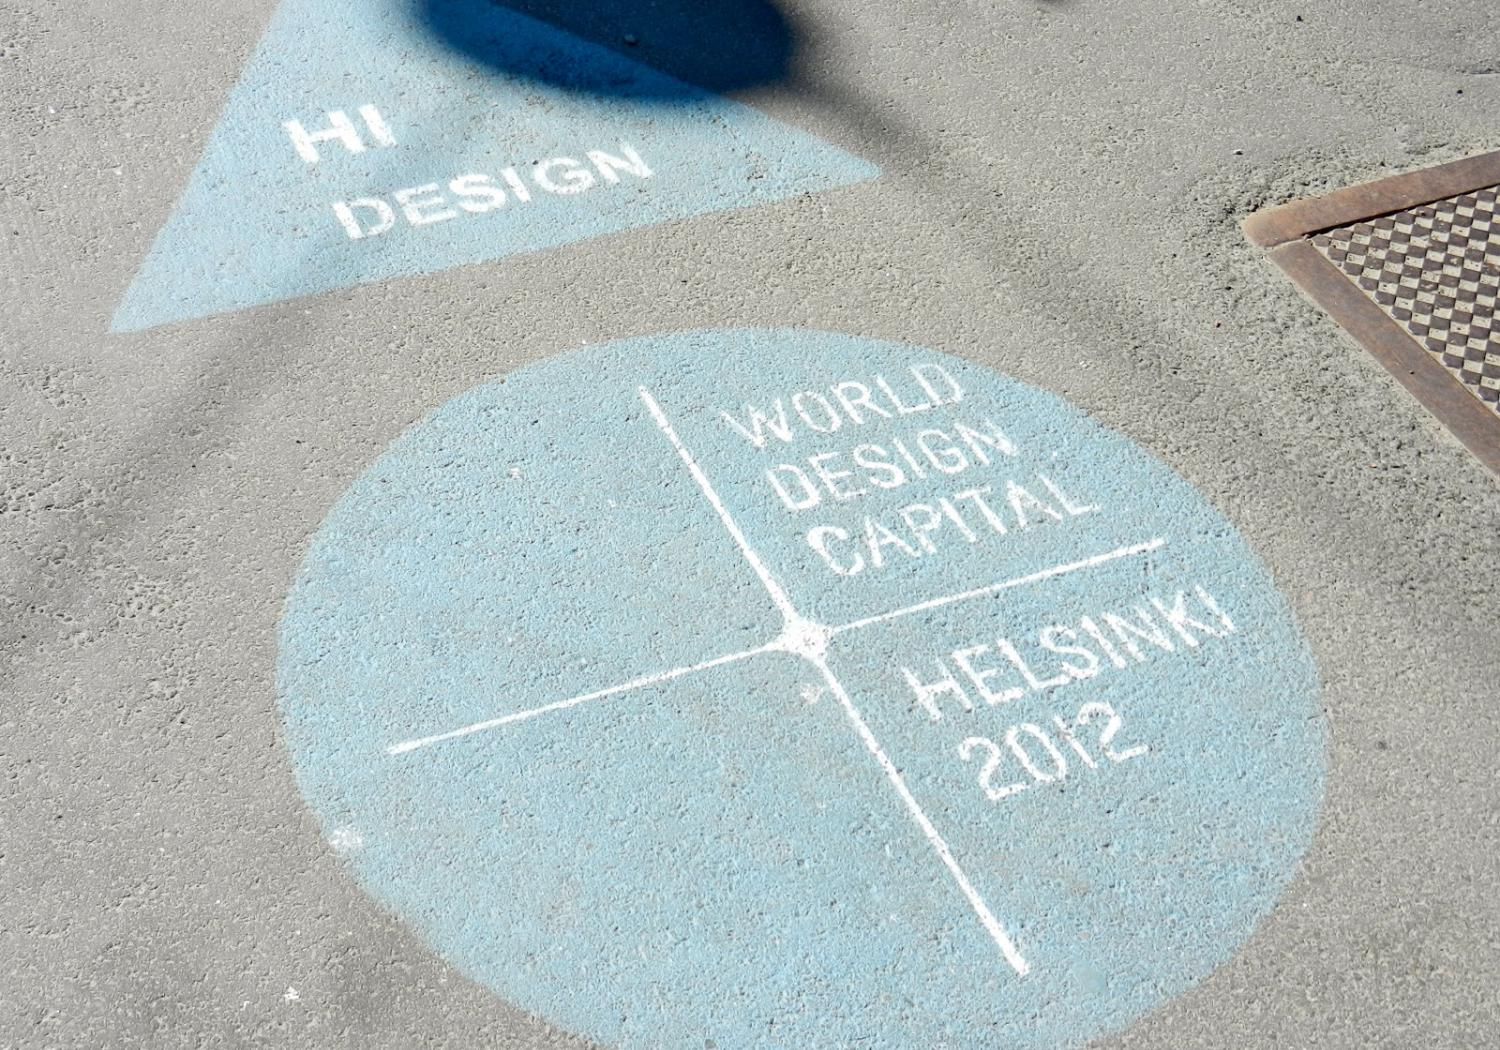 World Design Capital 2012 - Helsinki